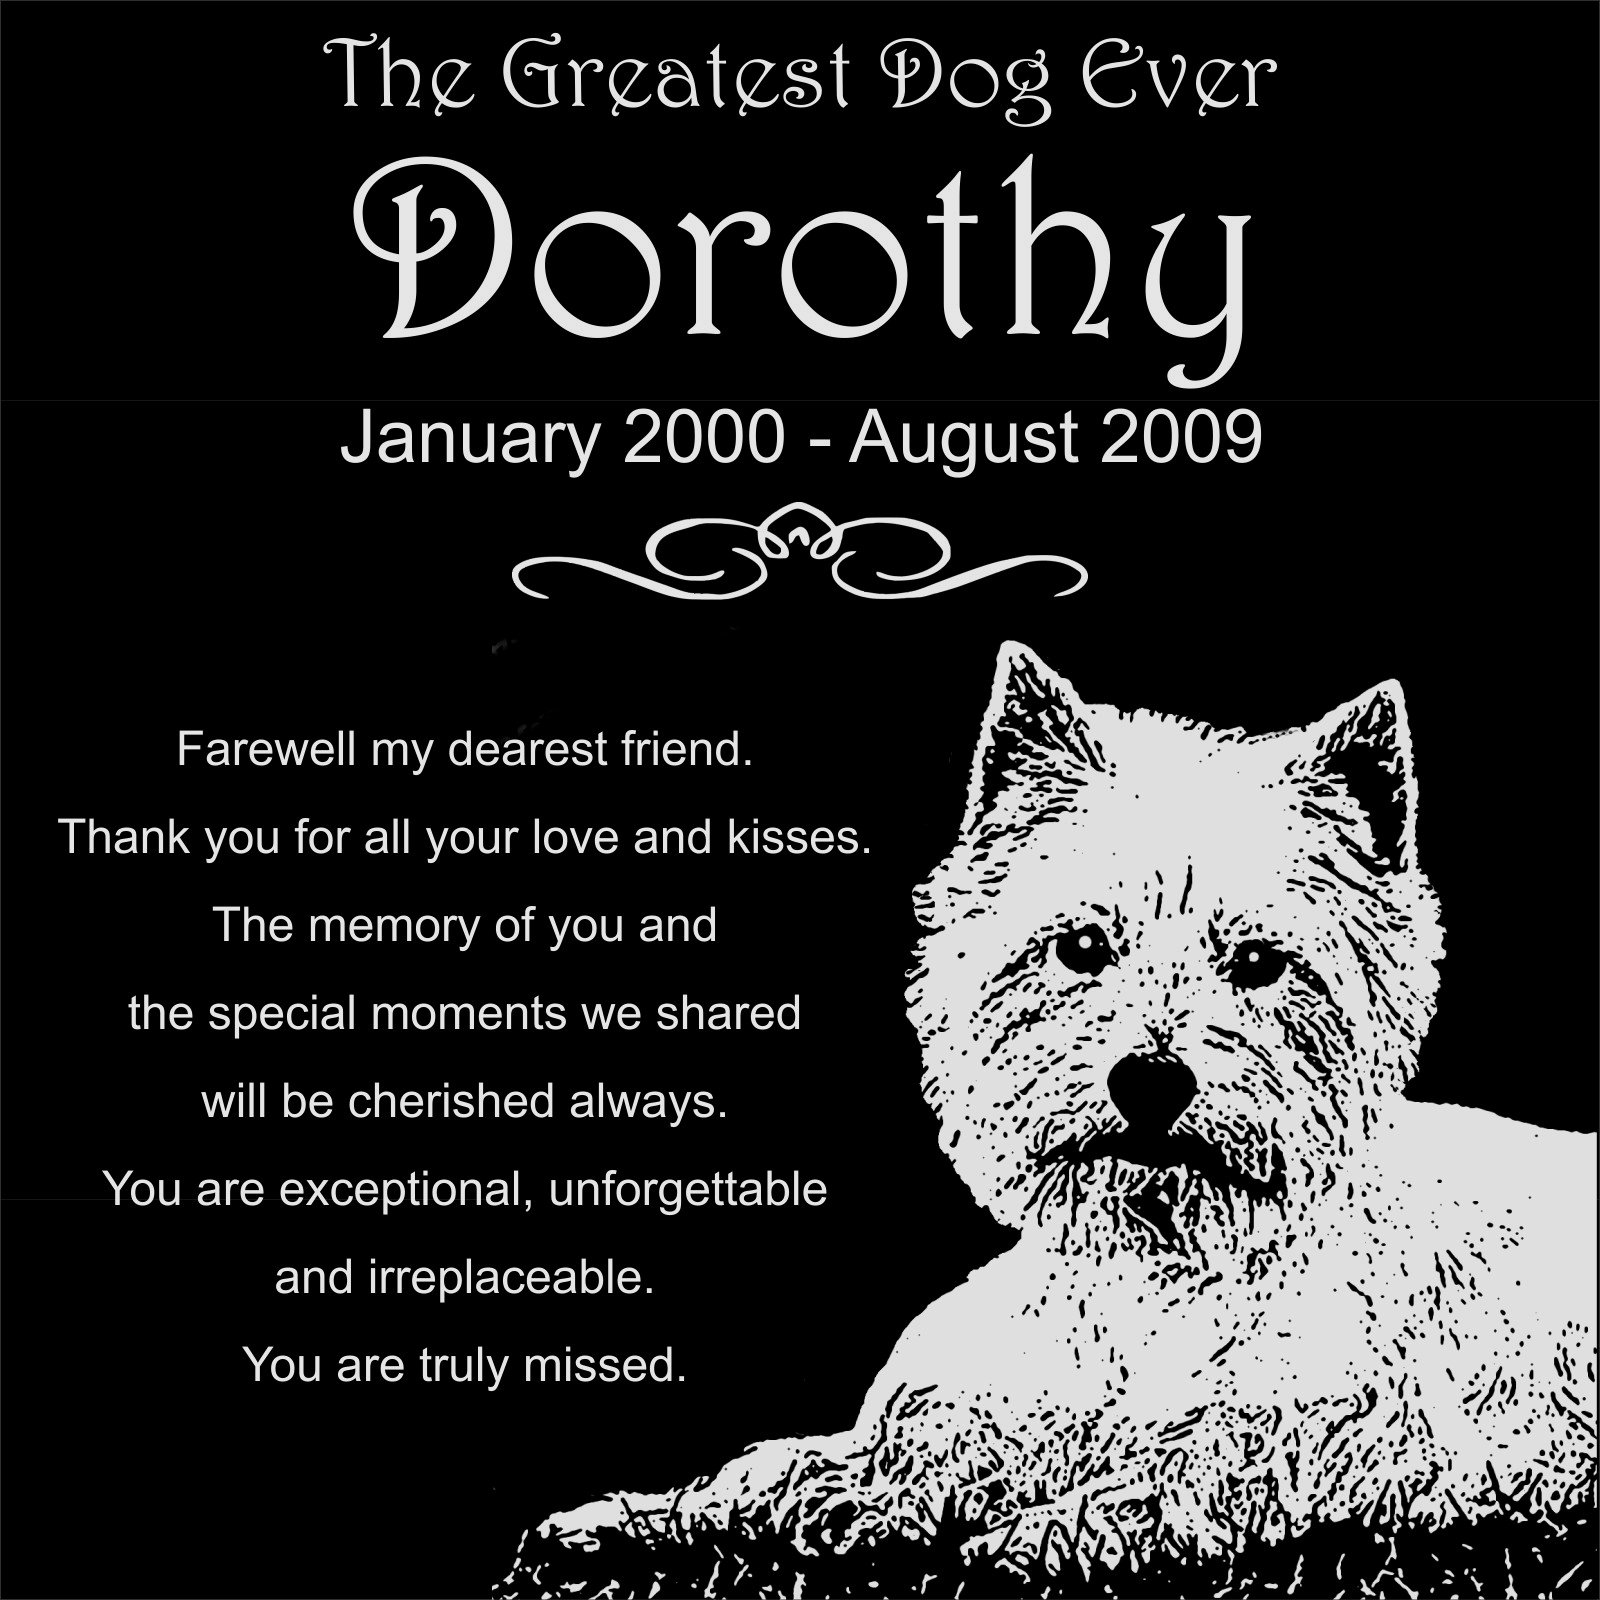 Personalized West Highland White Terrier Westie Dog Pet Memorial 12''x12'' Engraved Black Granite Grave Marker Head Stone Plaque DOR1 by Lazzari Collections